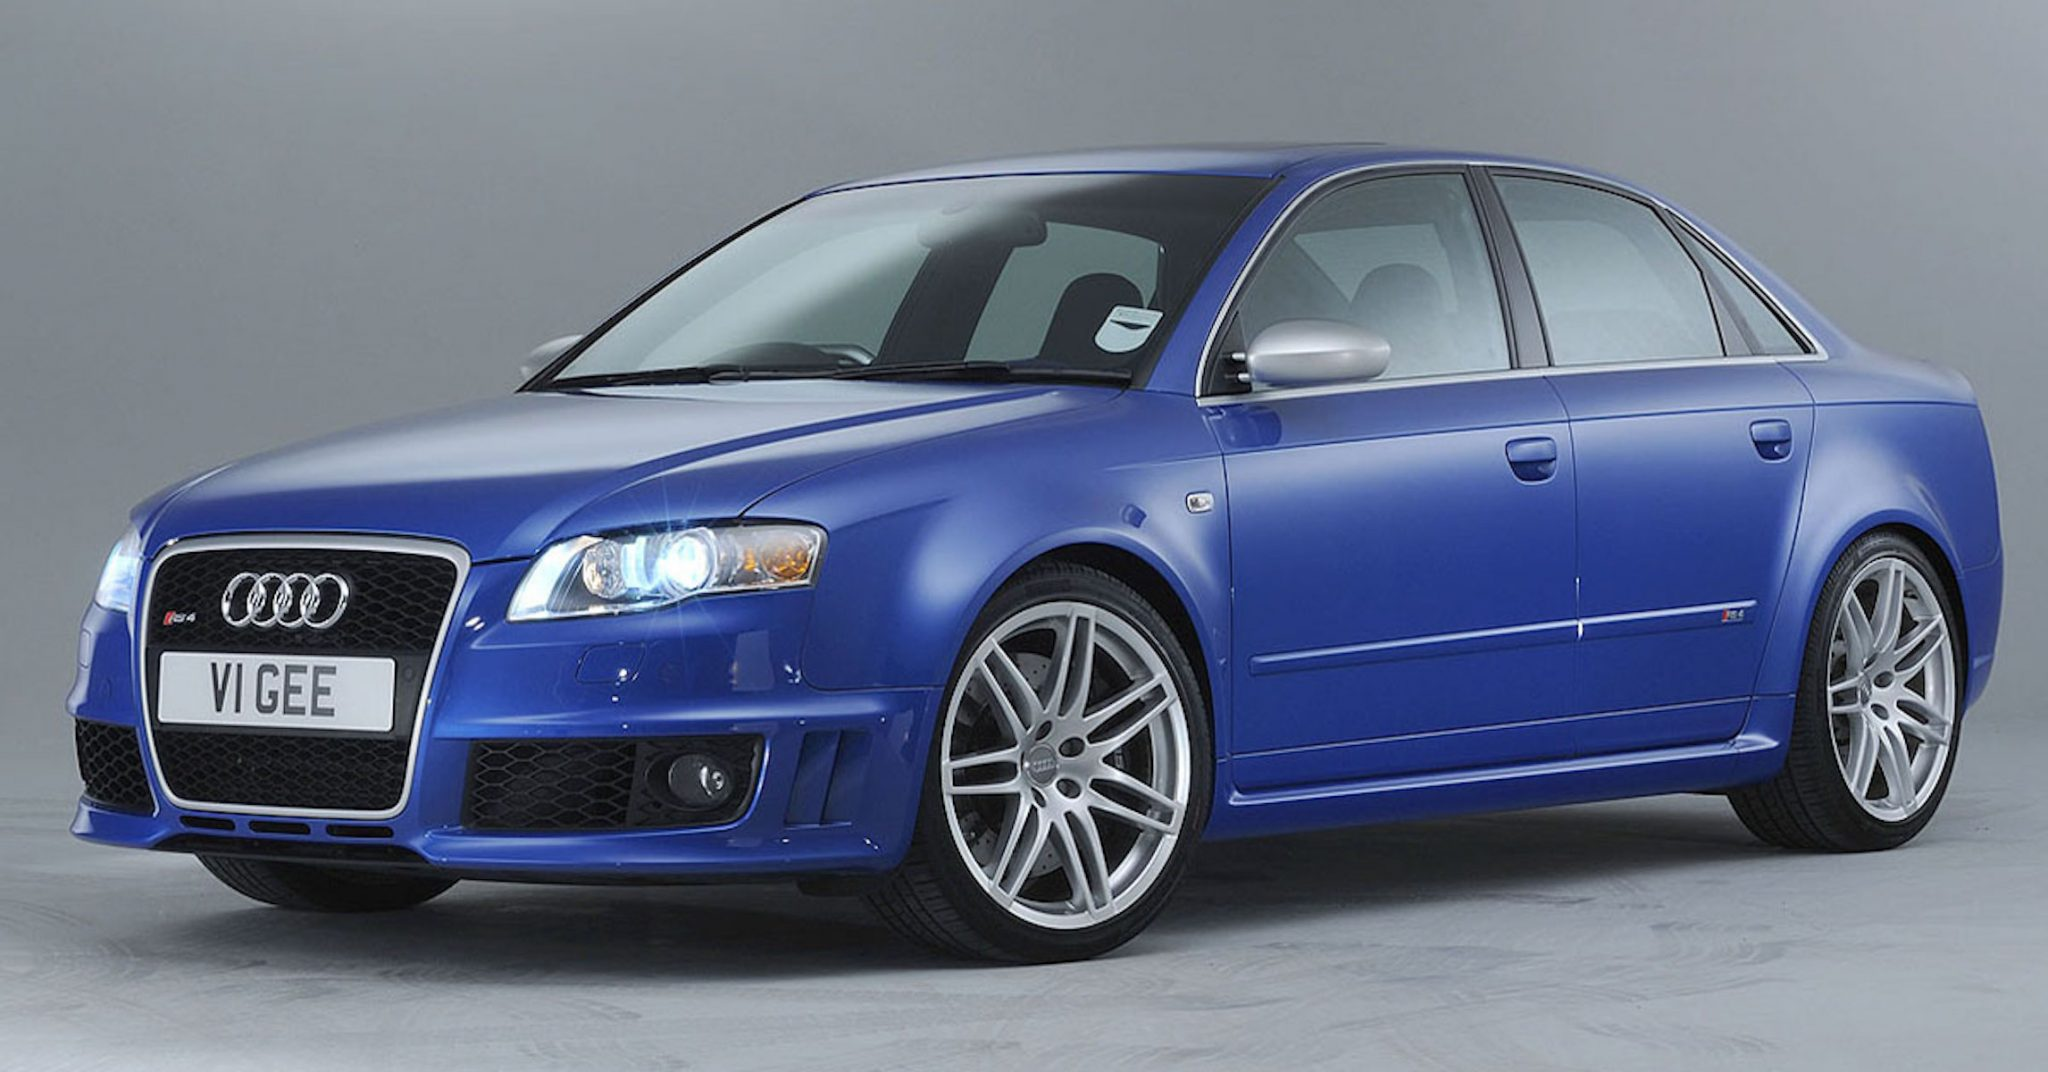 A side view of a blue 2006 Audi RS4 B7 Sedan in a photography studio